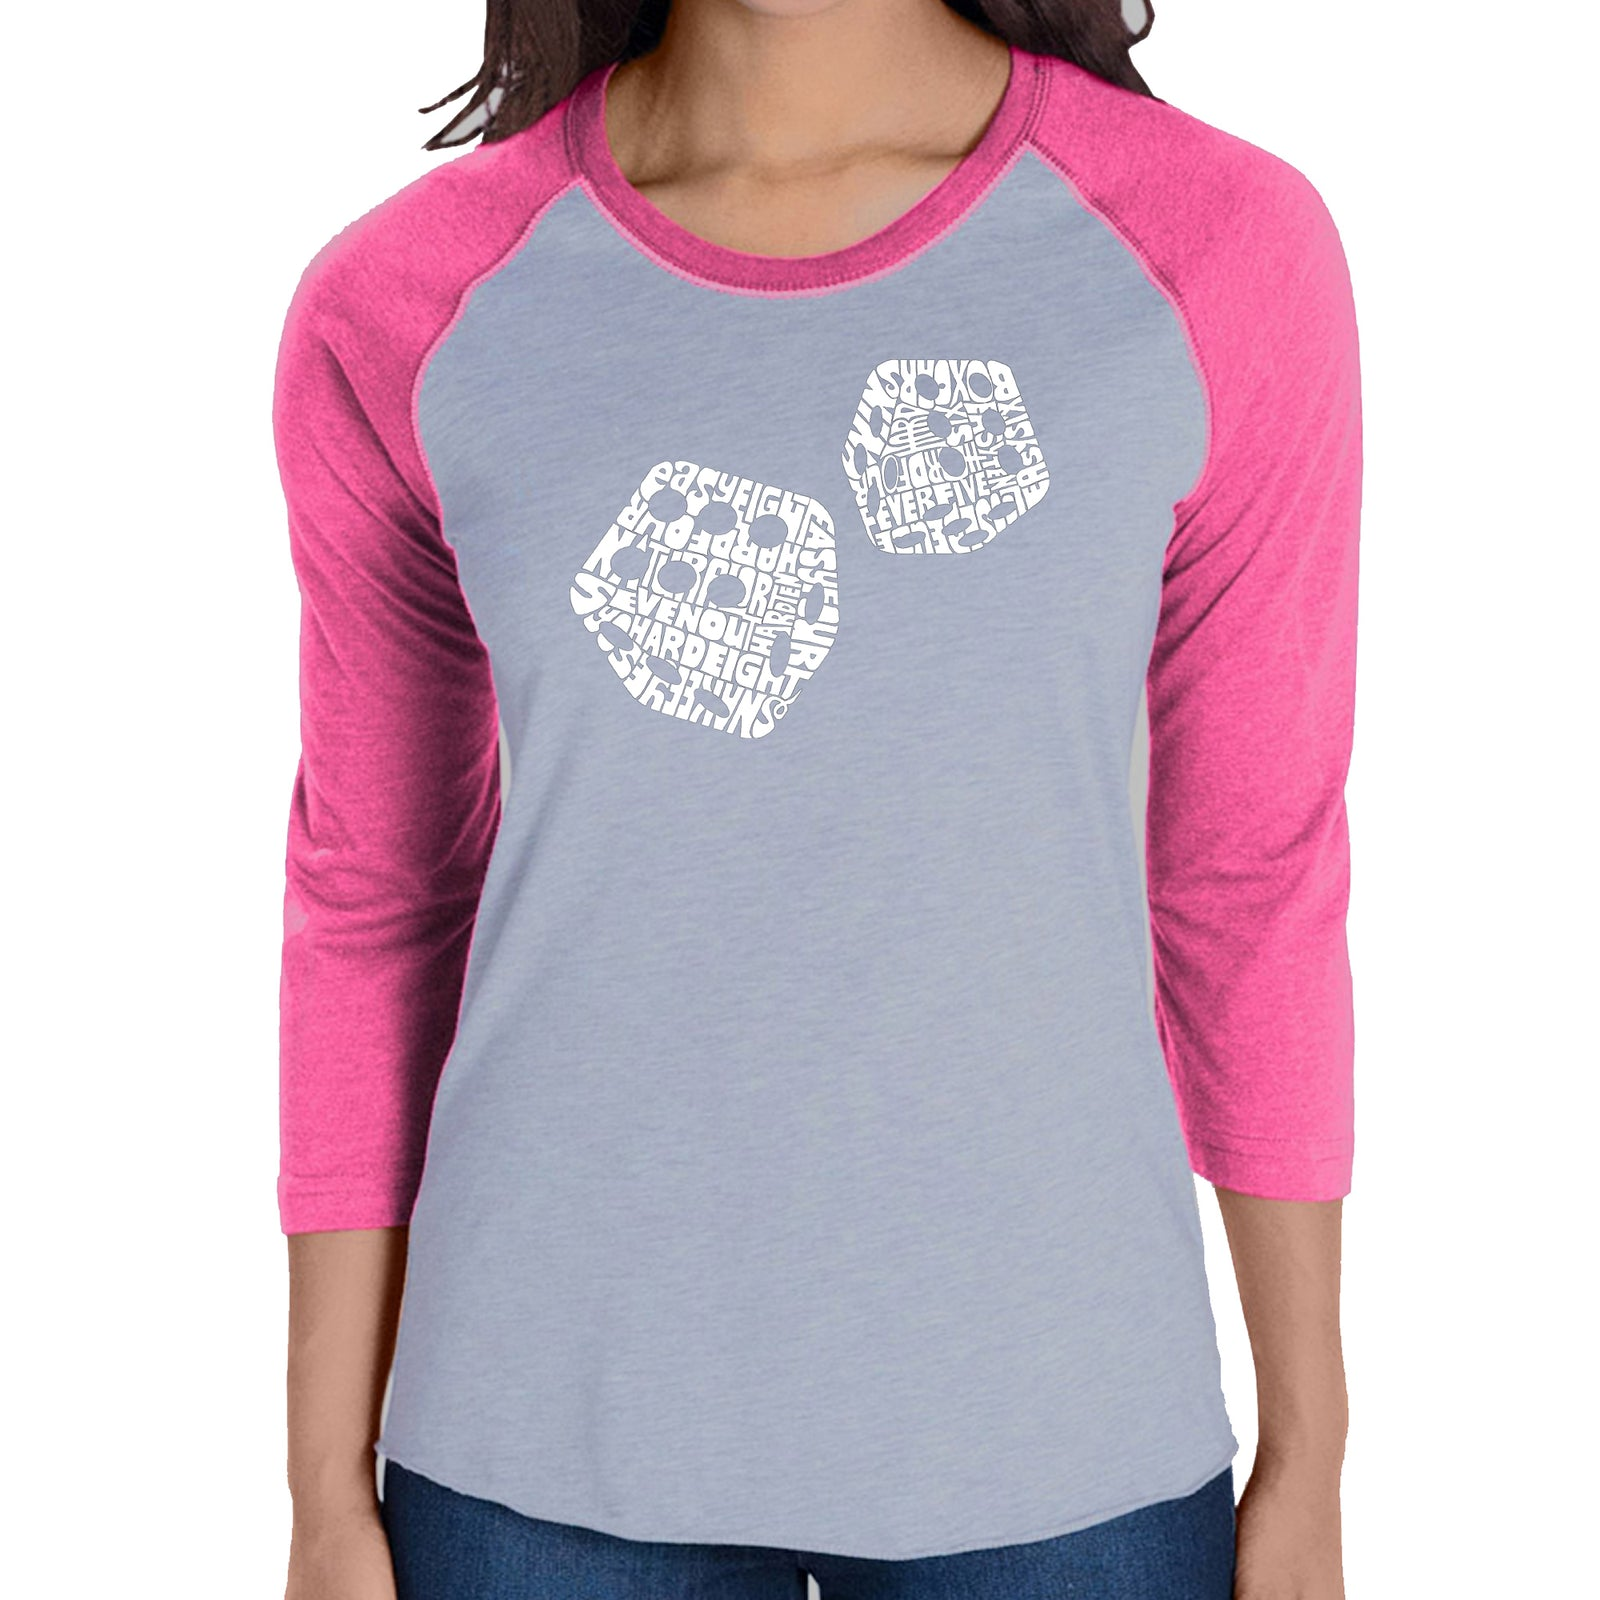 Women's Raglan Baseball Word Art T-shirt - DIFFERENT ROLLS THROWN IN THE GAME OF CRAPS